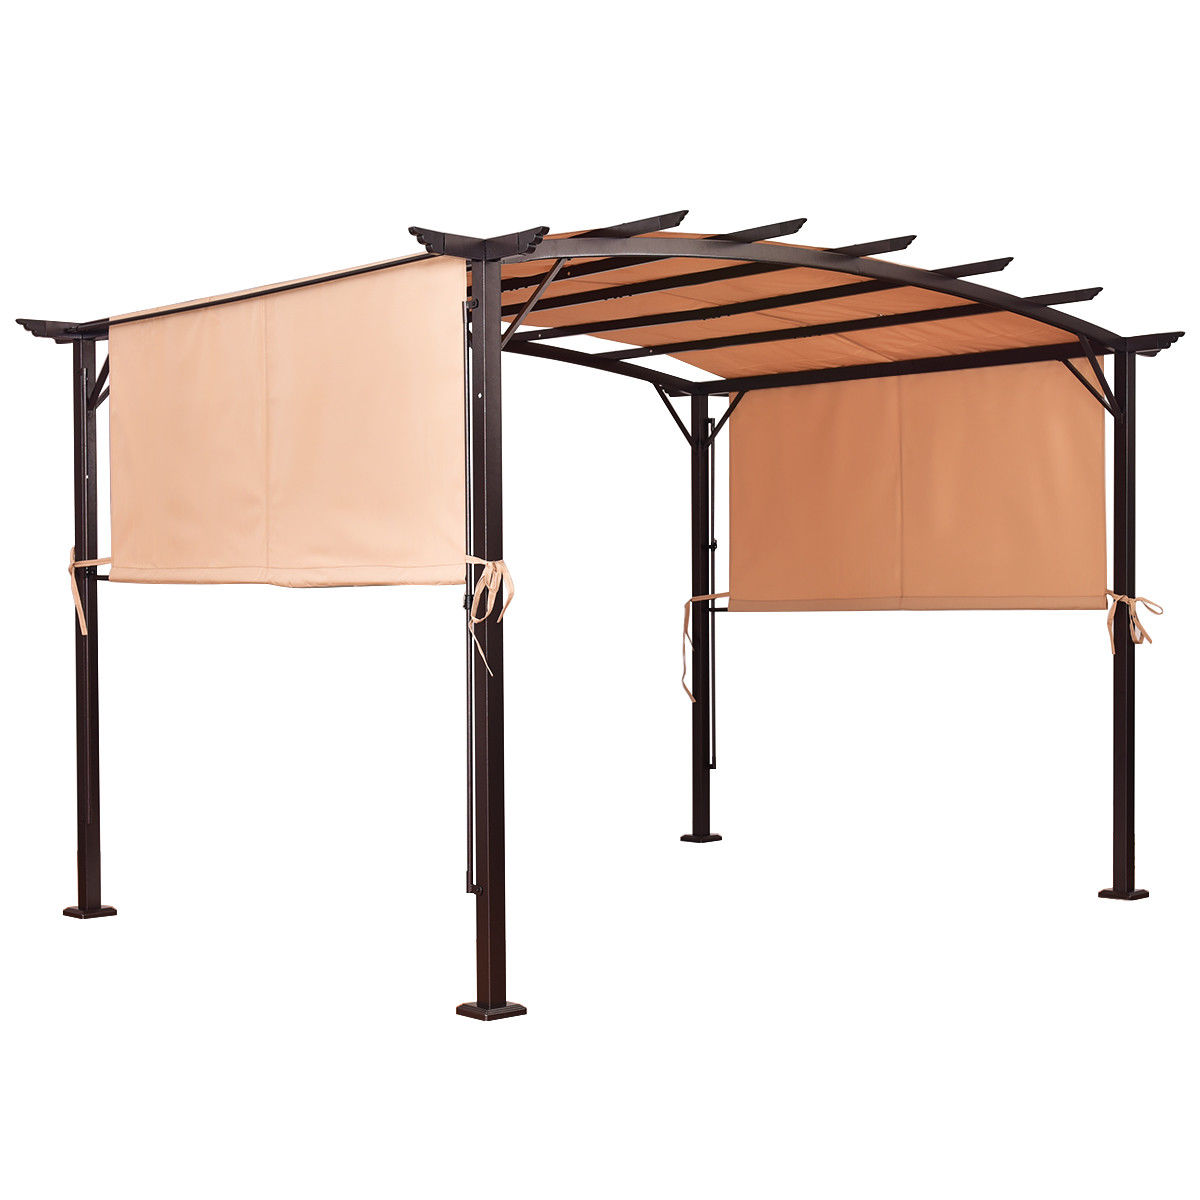 Costway 6.7'x17' Universal Replacement Canopy Cover Pergola Structure Sun Awning by Costway